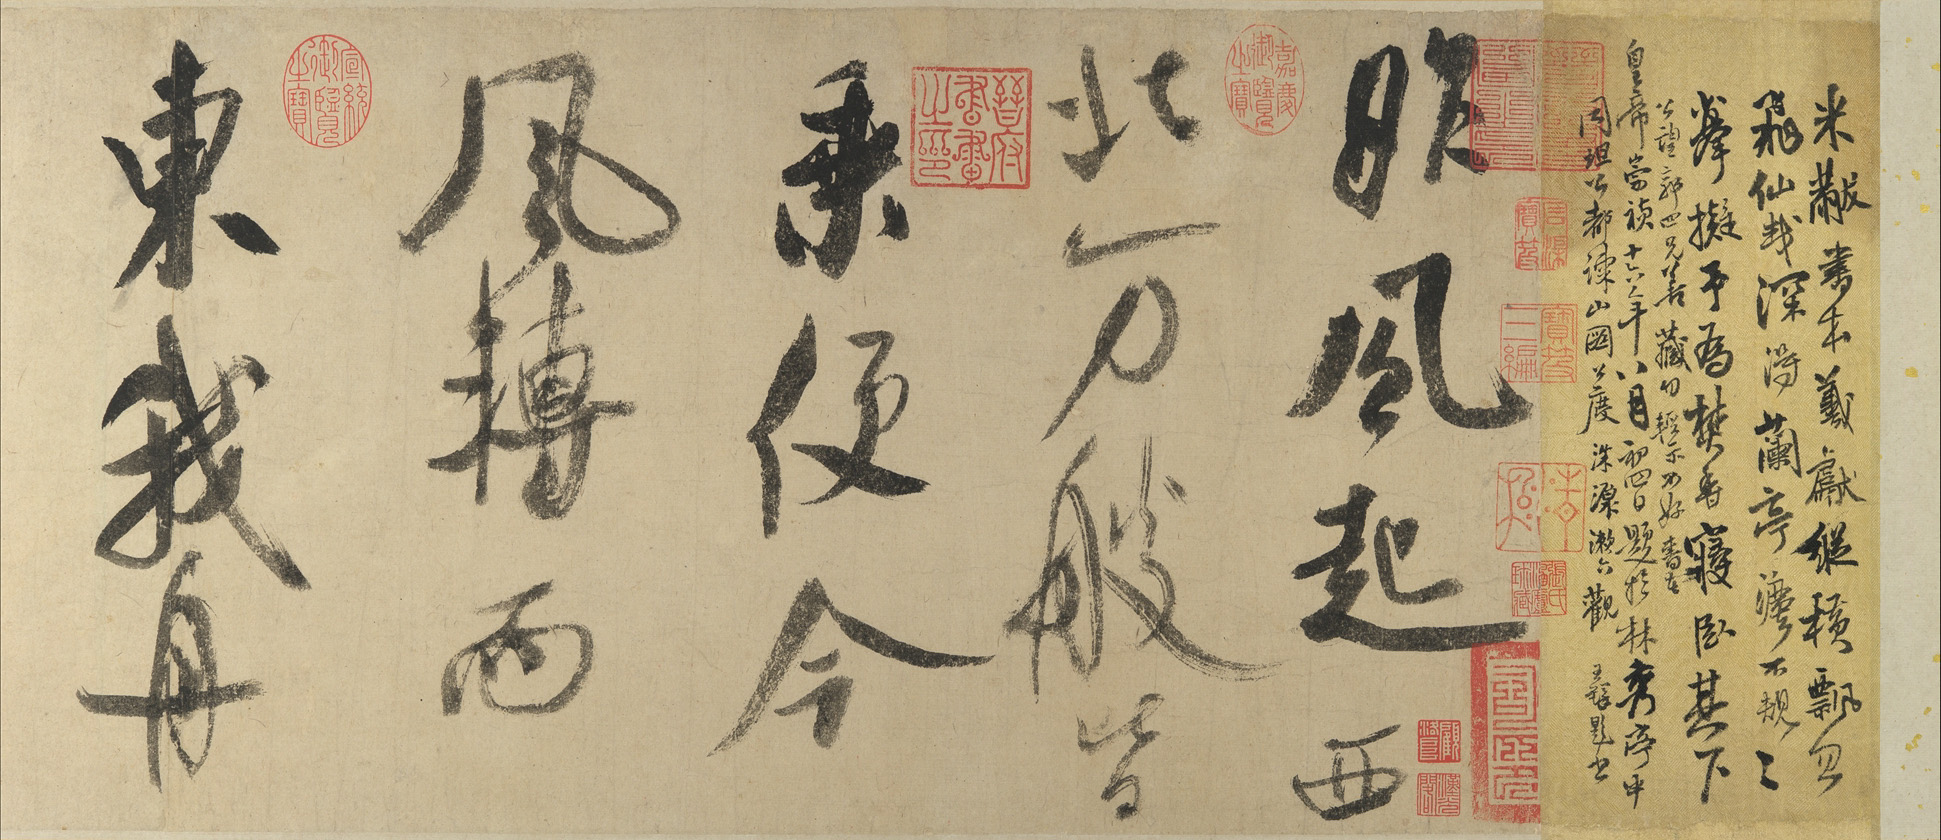 Poem Written in a Boat on the Wu River, 1100 — Northern Song Dynasty, Metropolitan Museum of Art